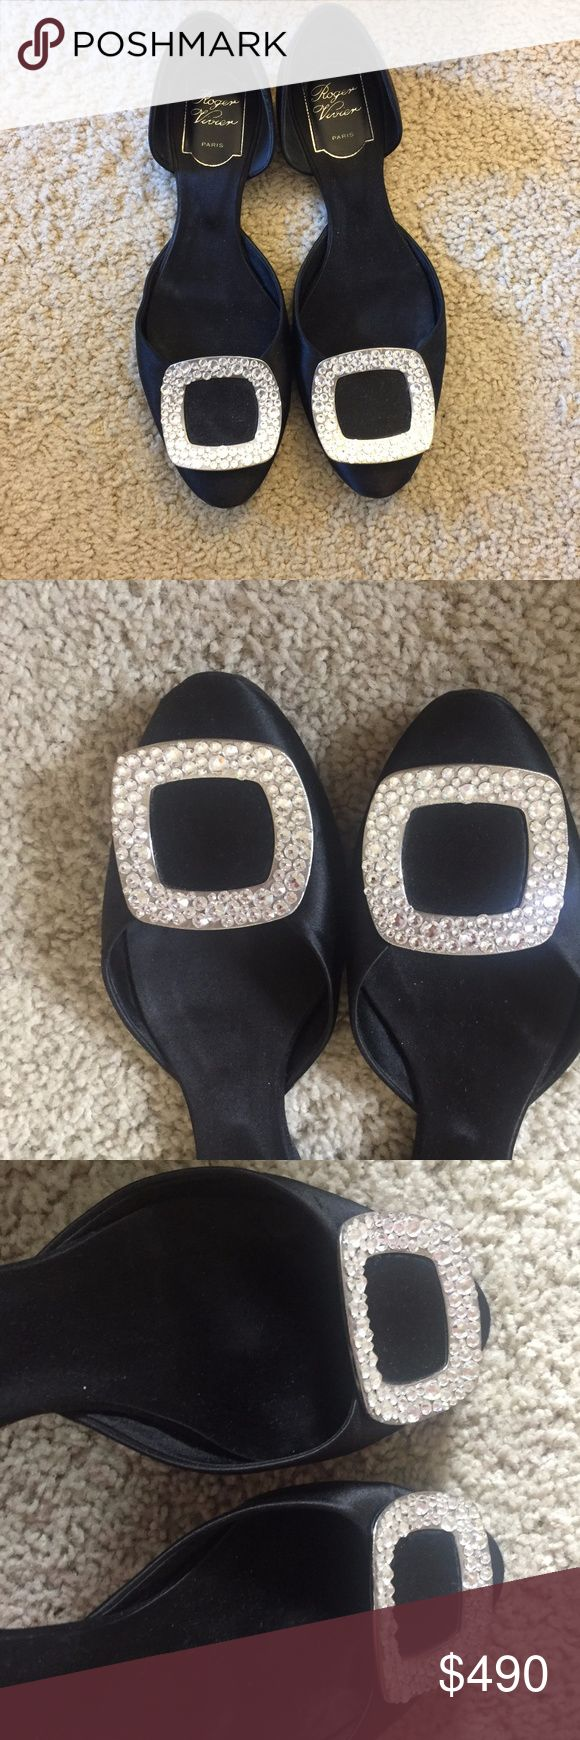 Roger Vivier Black Ballerine Chips Satin D'orsay very good condition comes with dust bag and shoe boxes size 7 I put a protect on the sole before I wore Roger Vivier Shoes Flats & Loafers